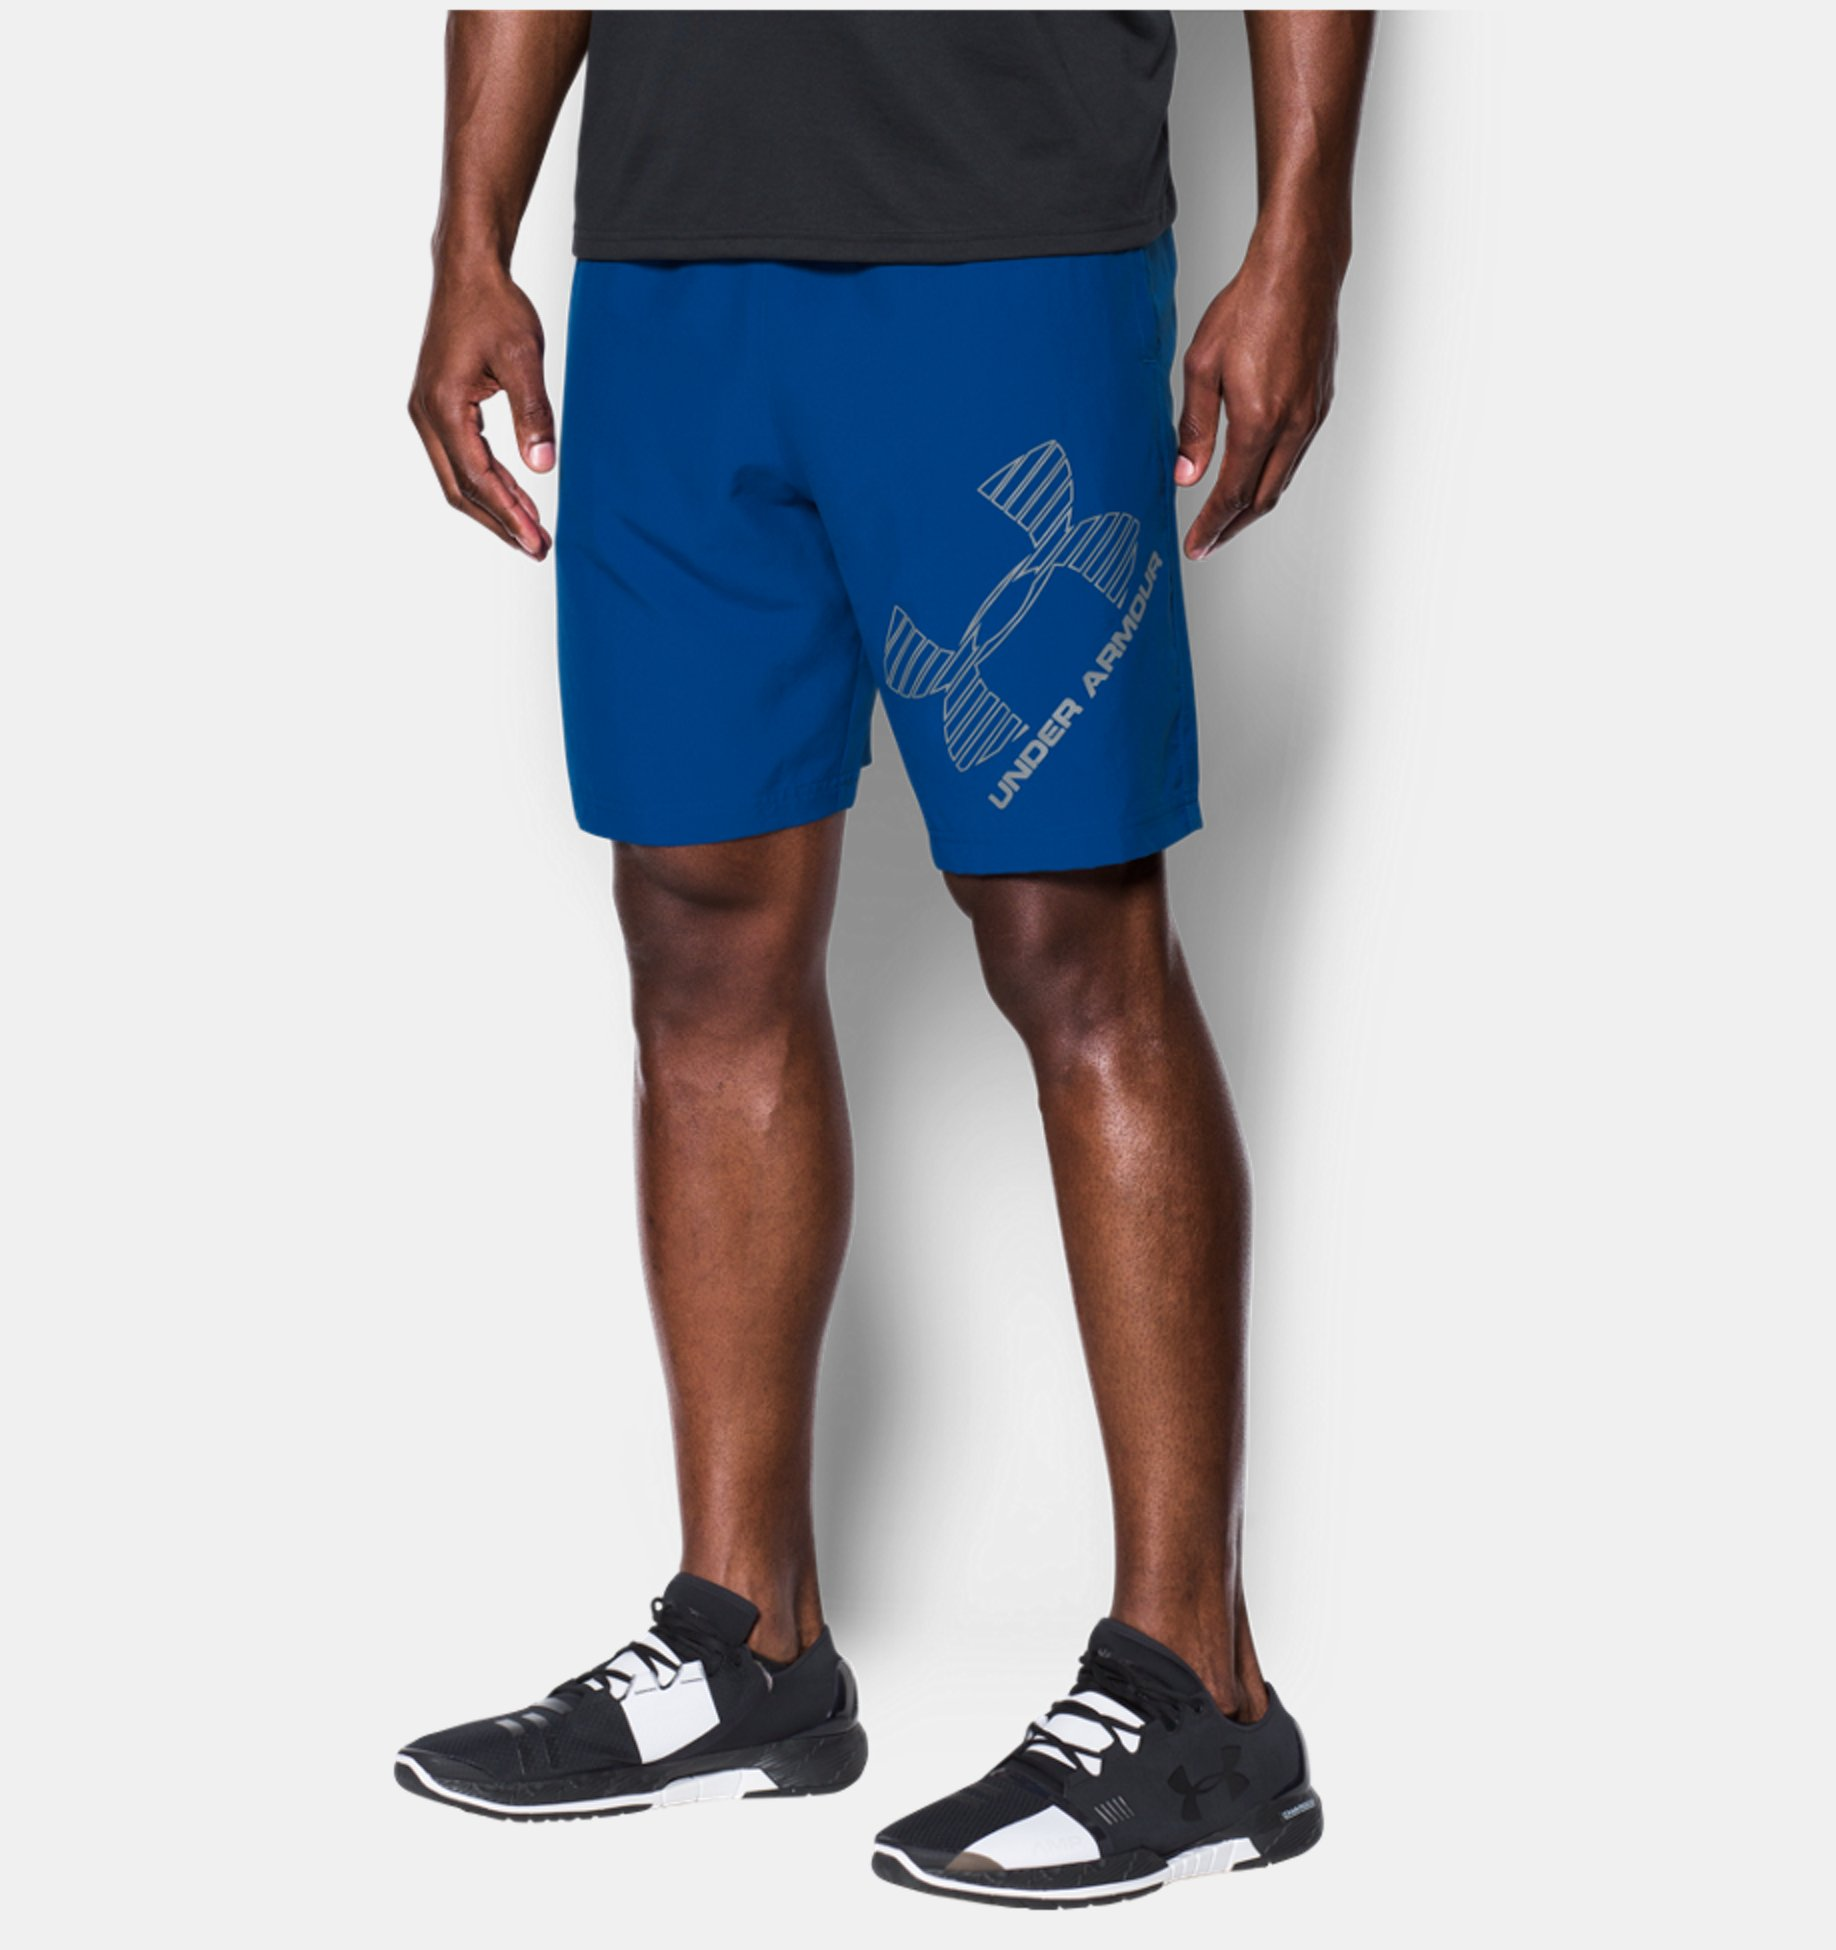 Kraťasy Under Armour Graphik Woven Shorts modré